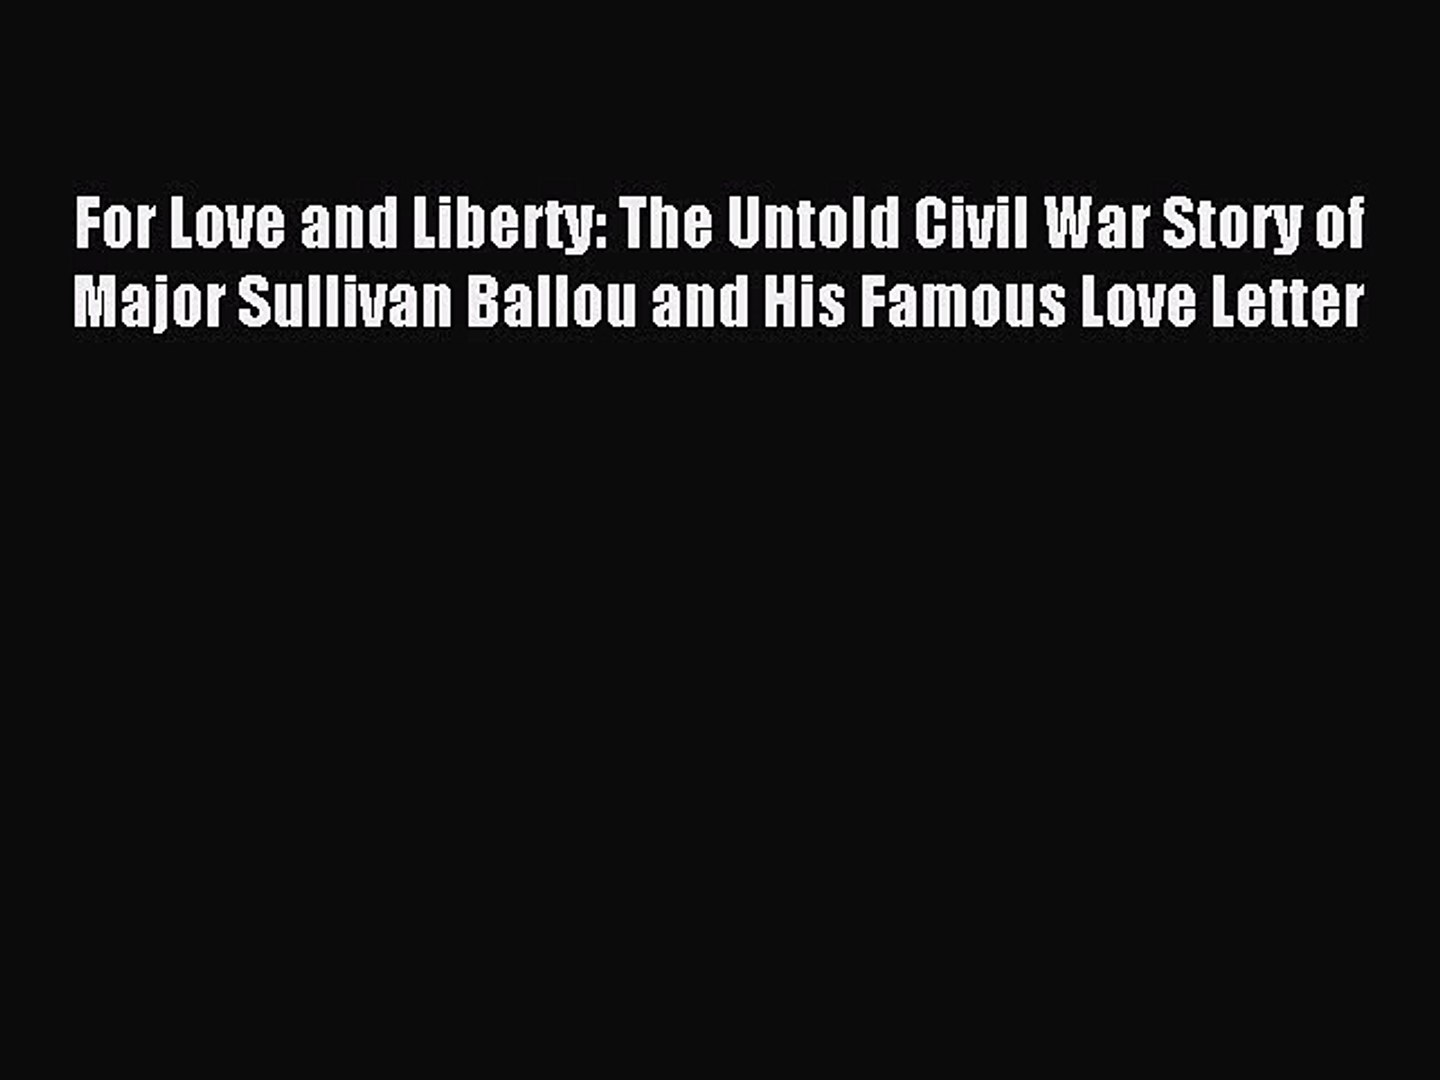 Download For Love and Liberty: The Untold Civil War Story of Major Sullivan Ballou and His